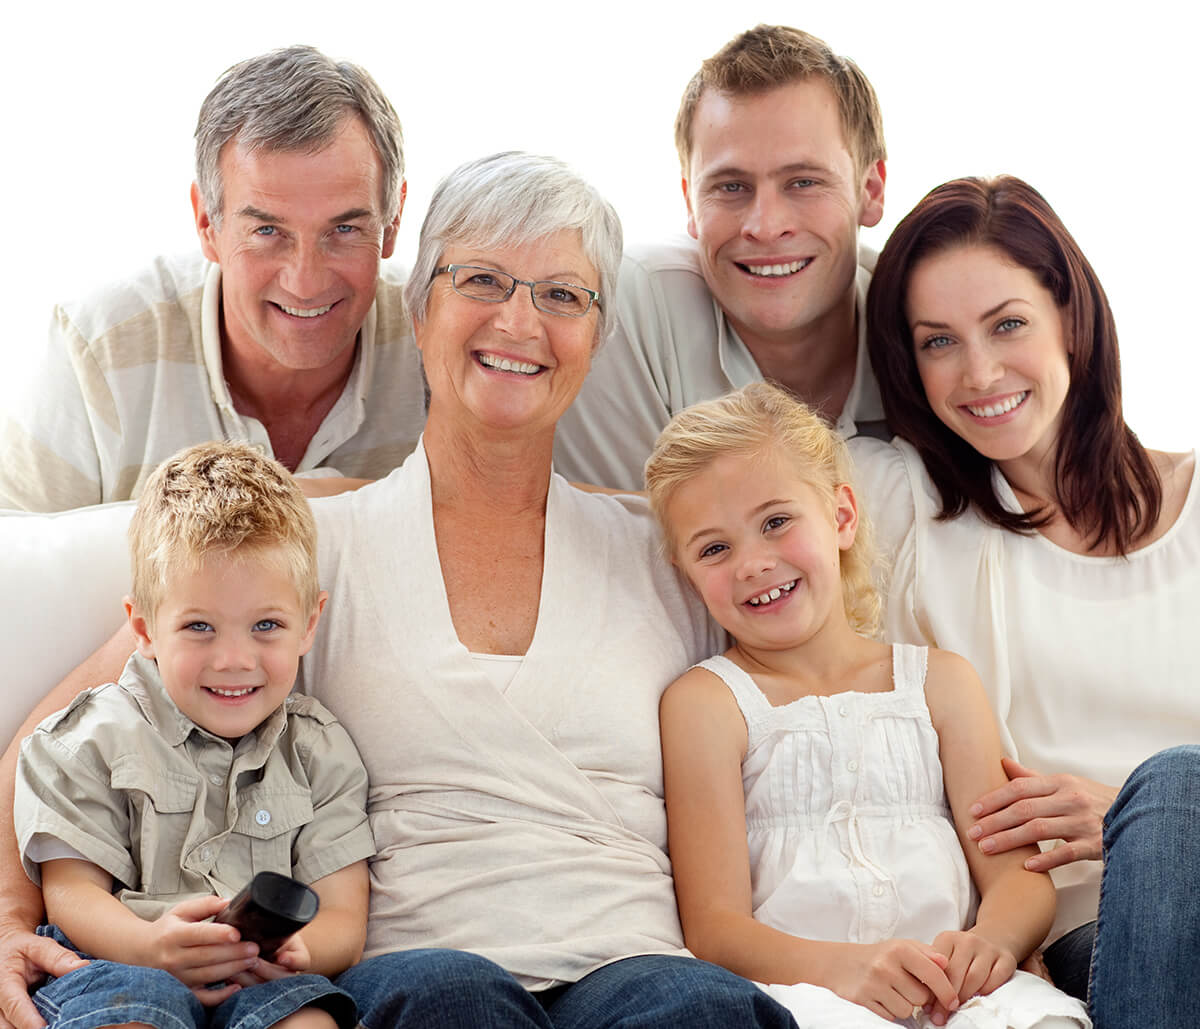 Dental Hygiene Tips for the Whole Family from Your Trusted Pembroke Pines, FL Area Dentist